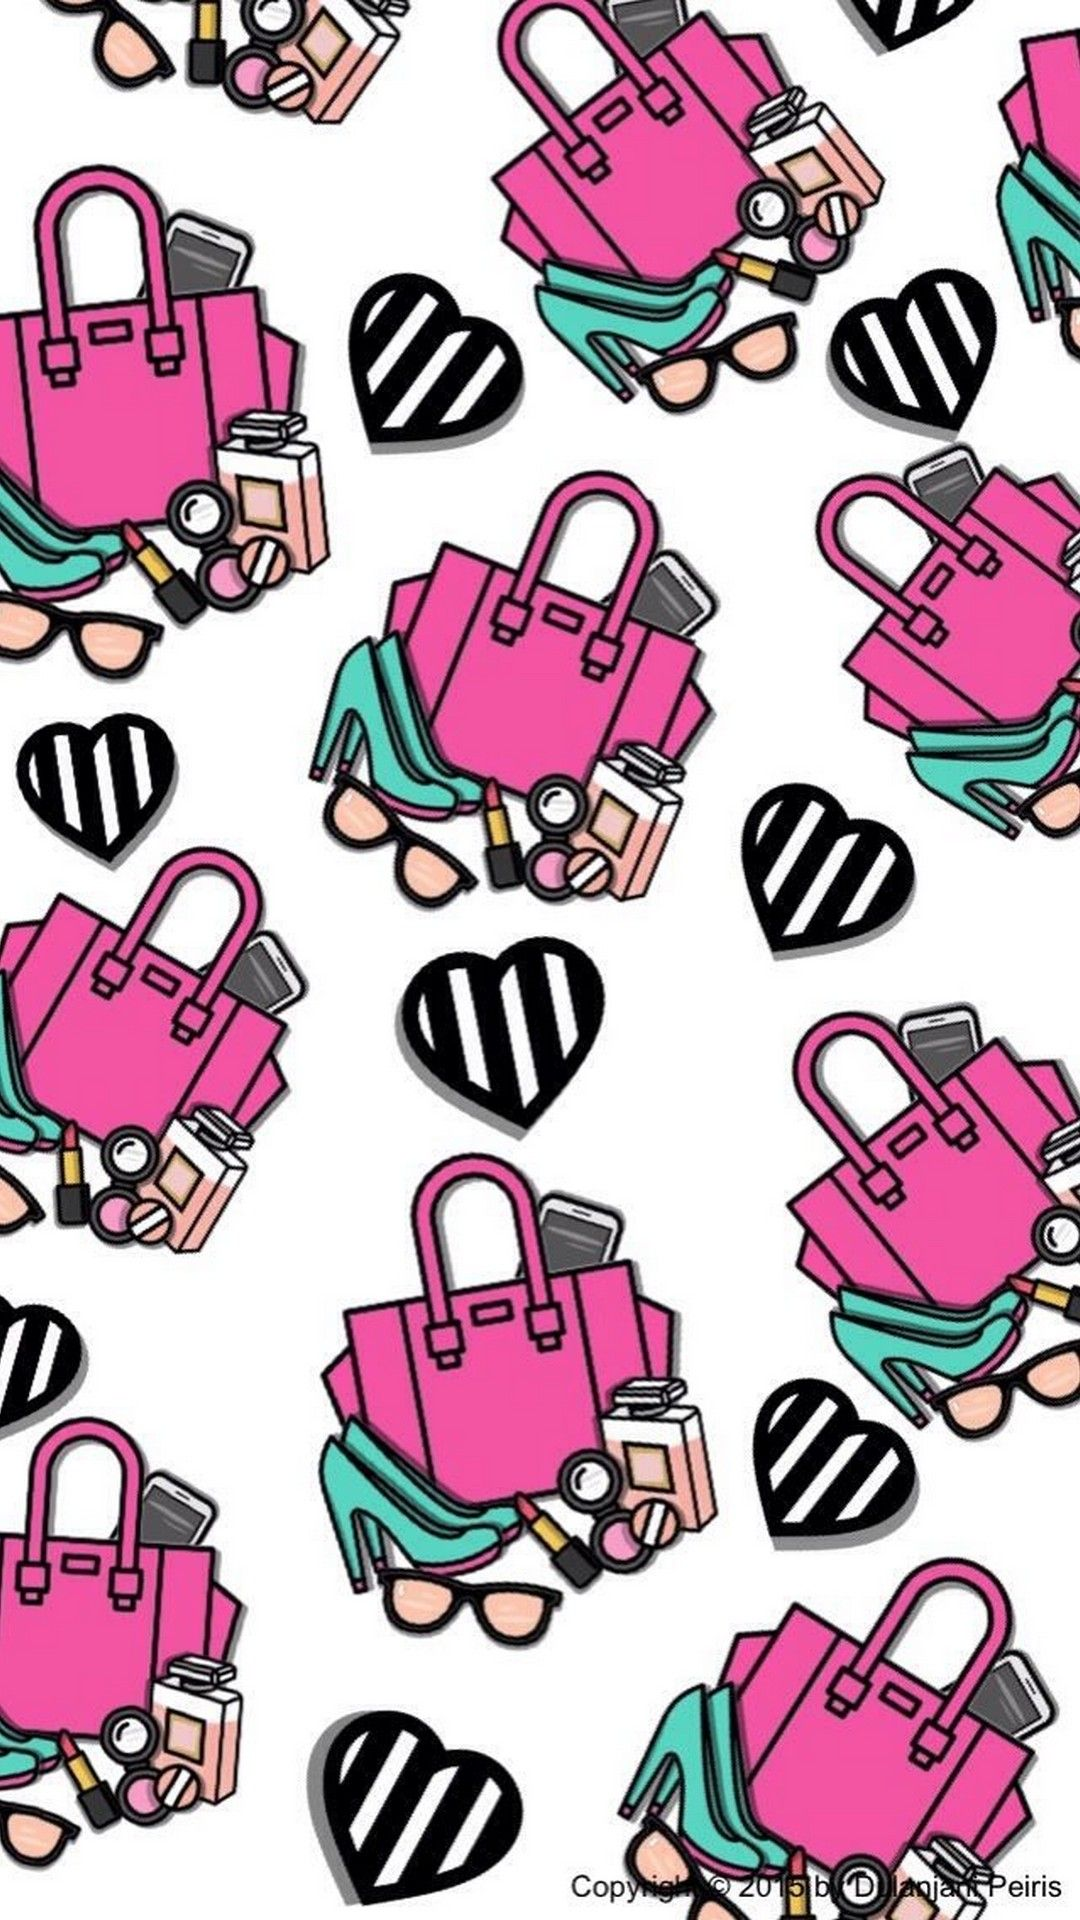 Cute Girly Fashion Wallpaper For Android Best Hd Wallpapers